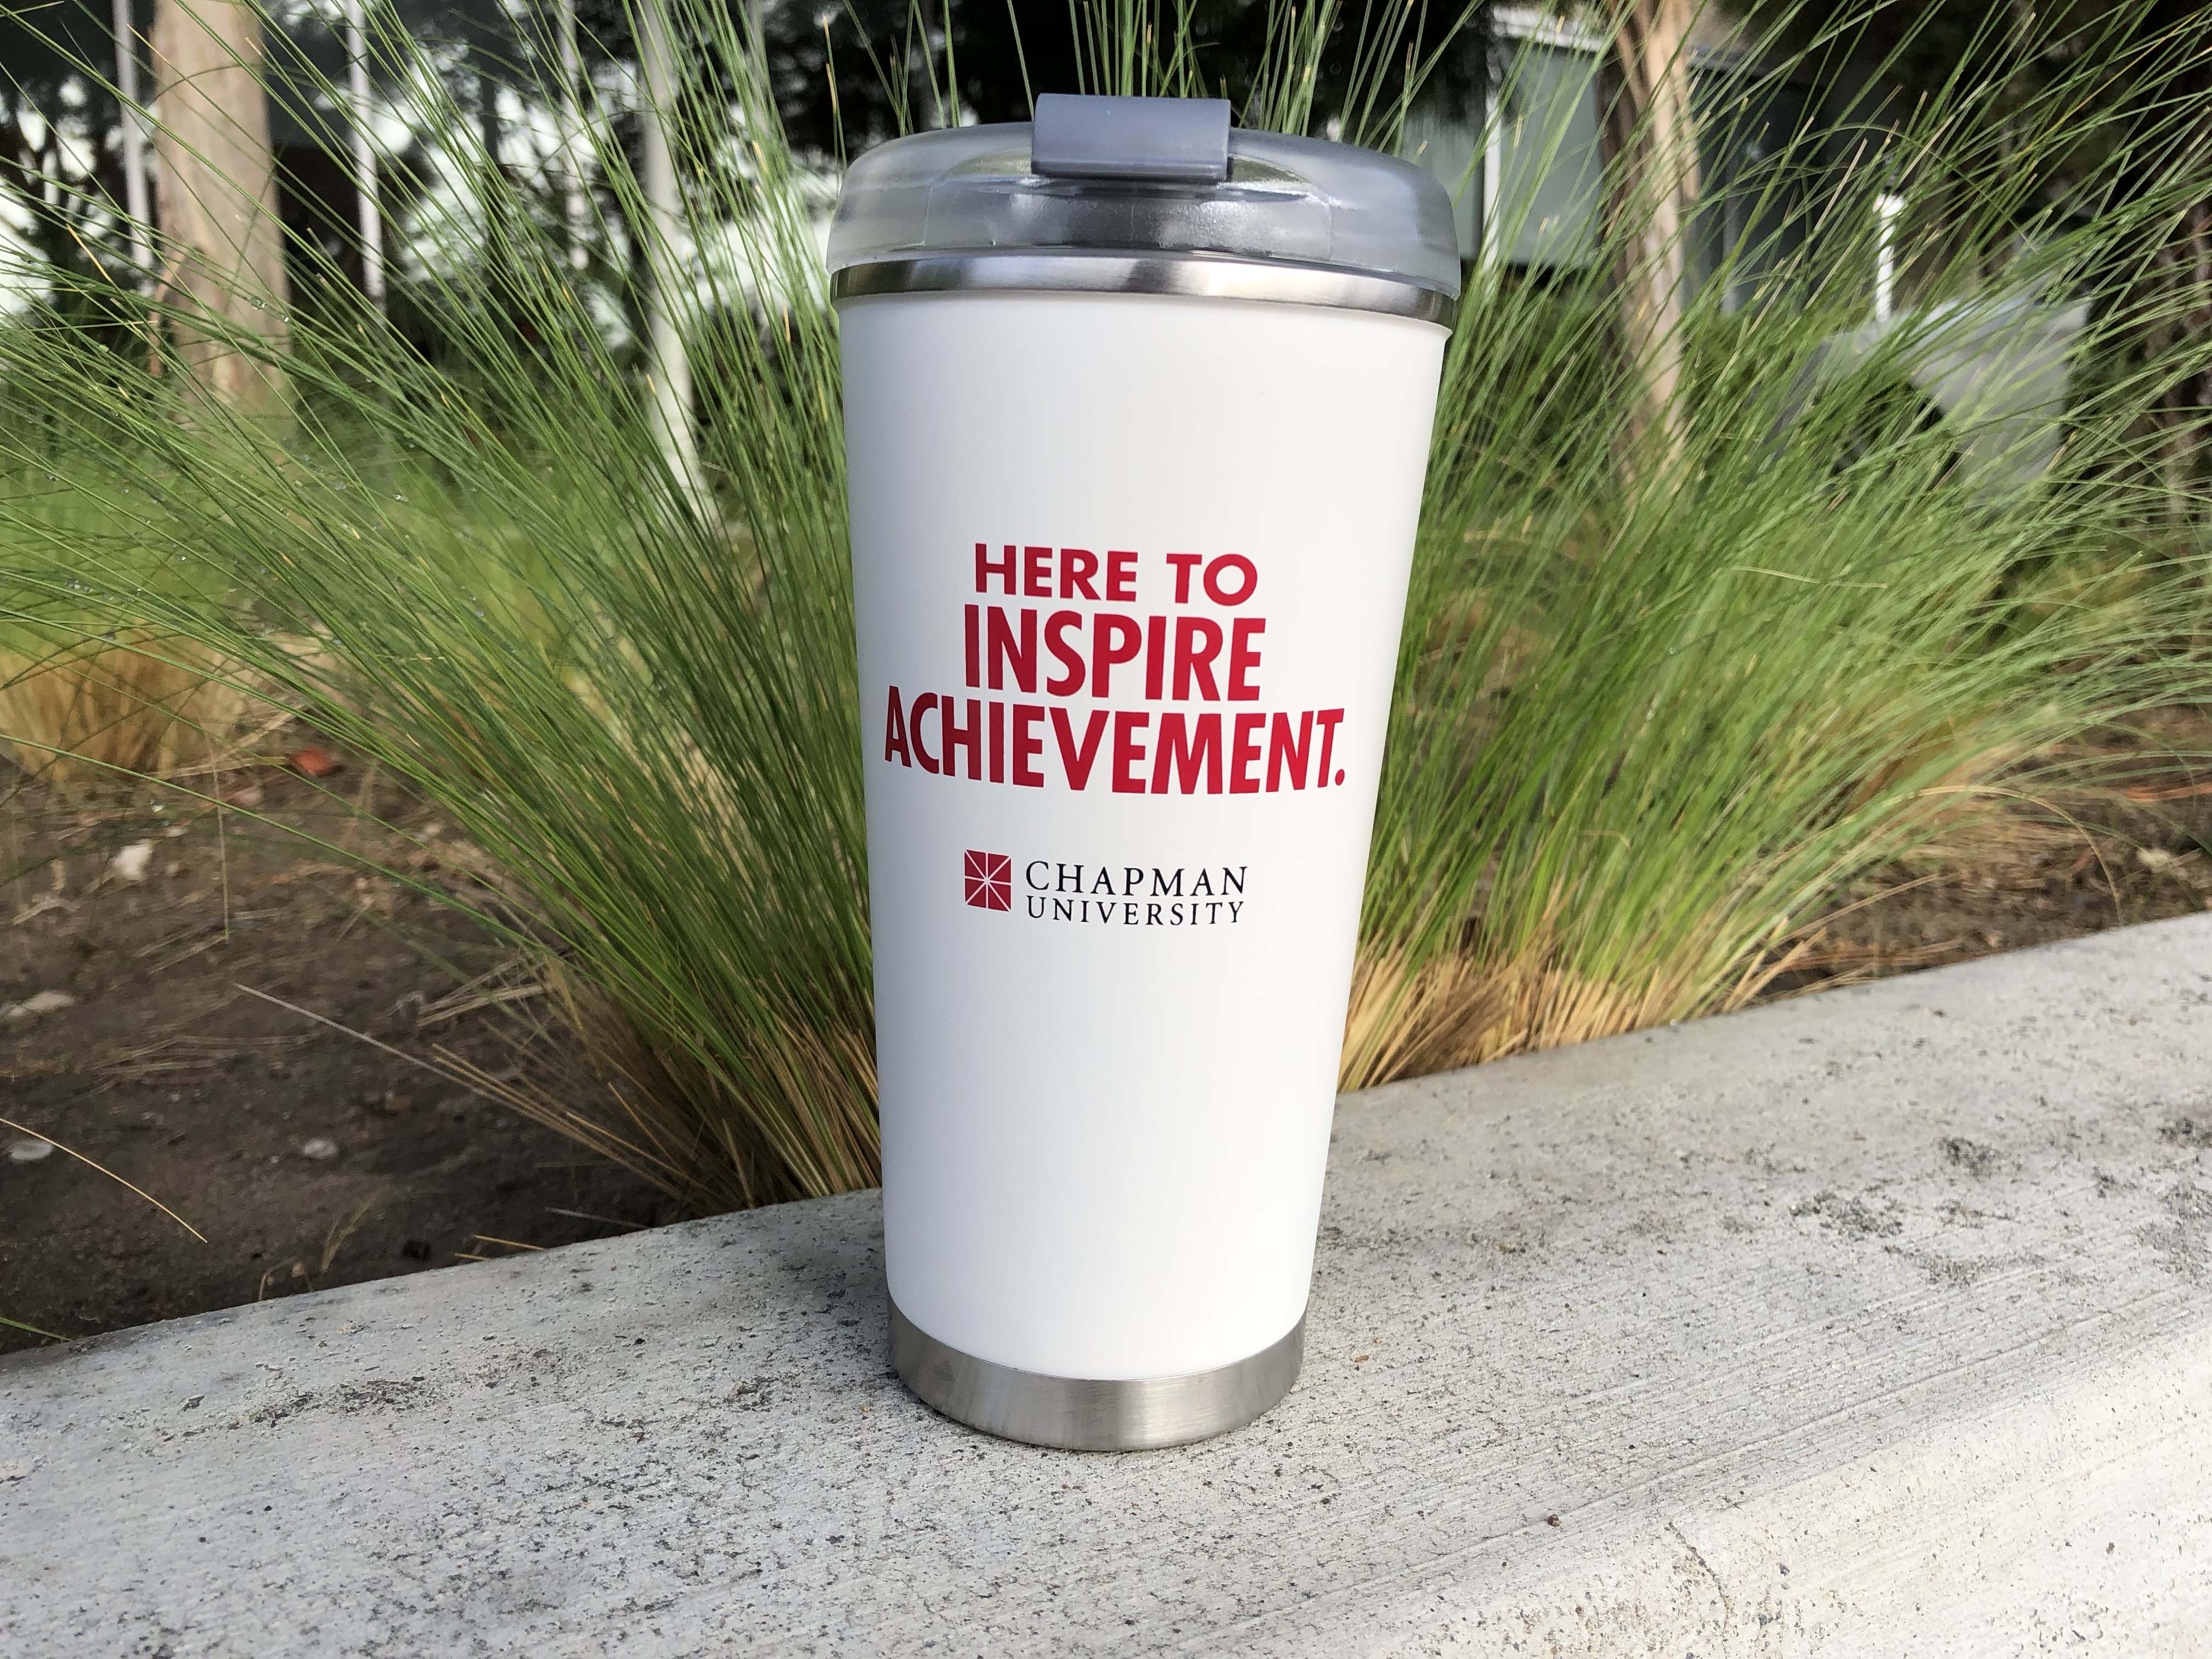 """white metal mug with slogan """"here to inspire achievement."""" and a Chapman University logo"""